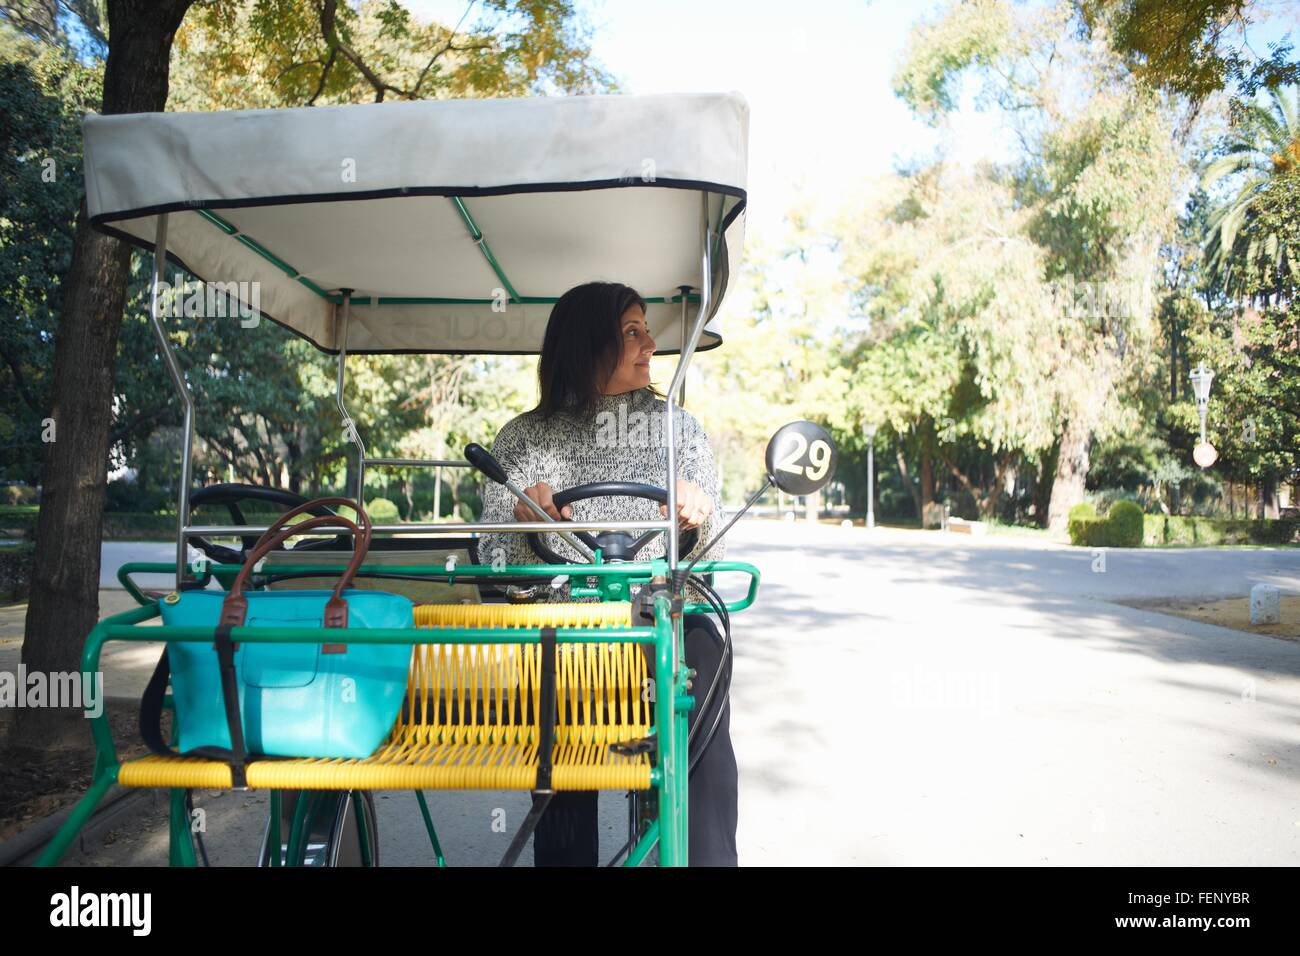 Mature woman sitting in golf buggy, looking away, Seville, Spain - Stock Image